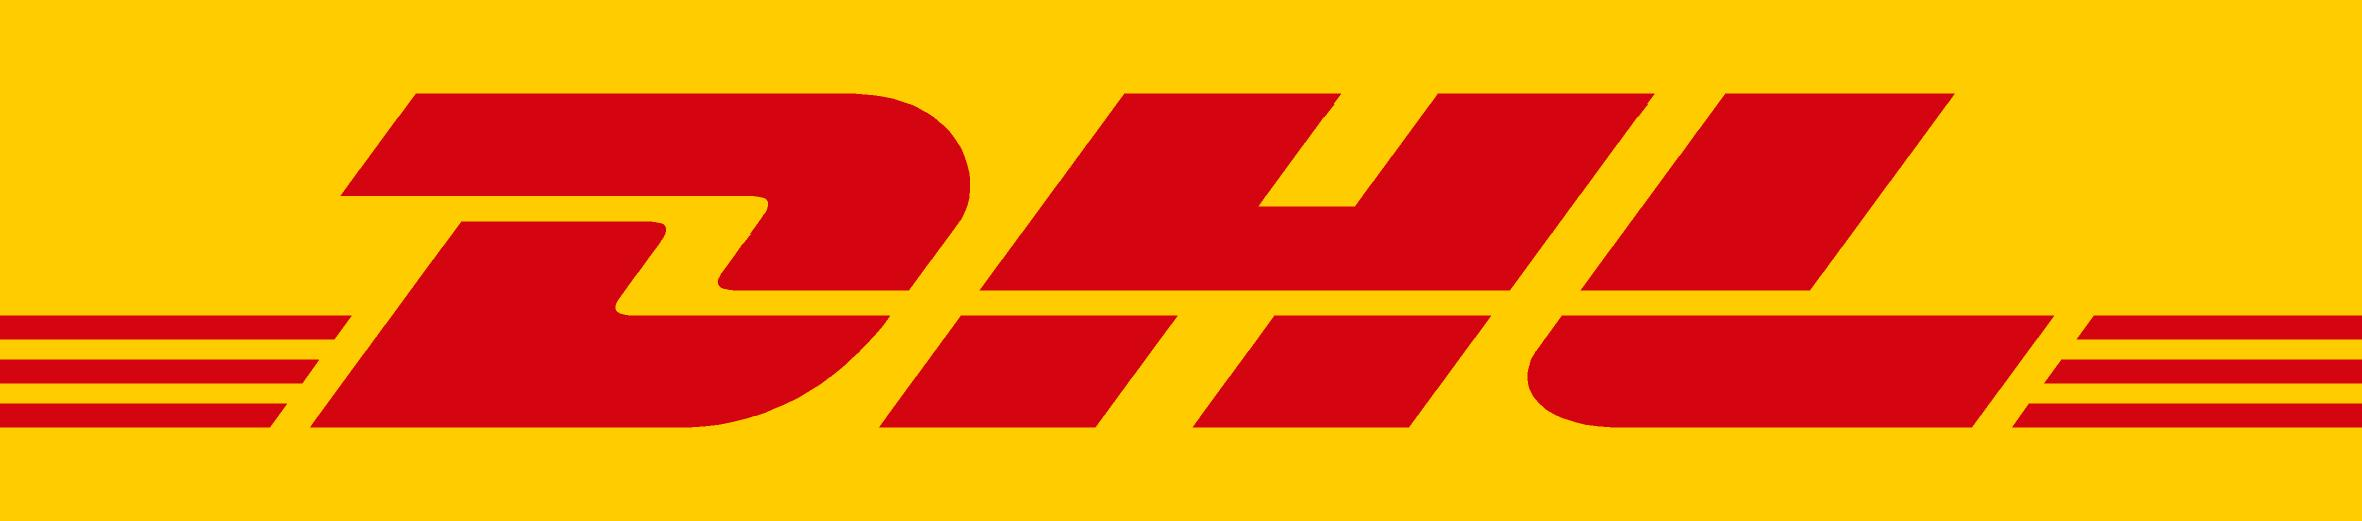 DHL Express (Poland) Sp. z o. o.